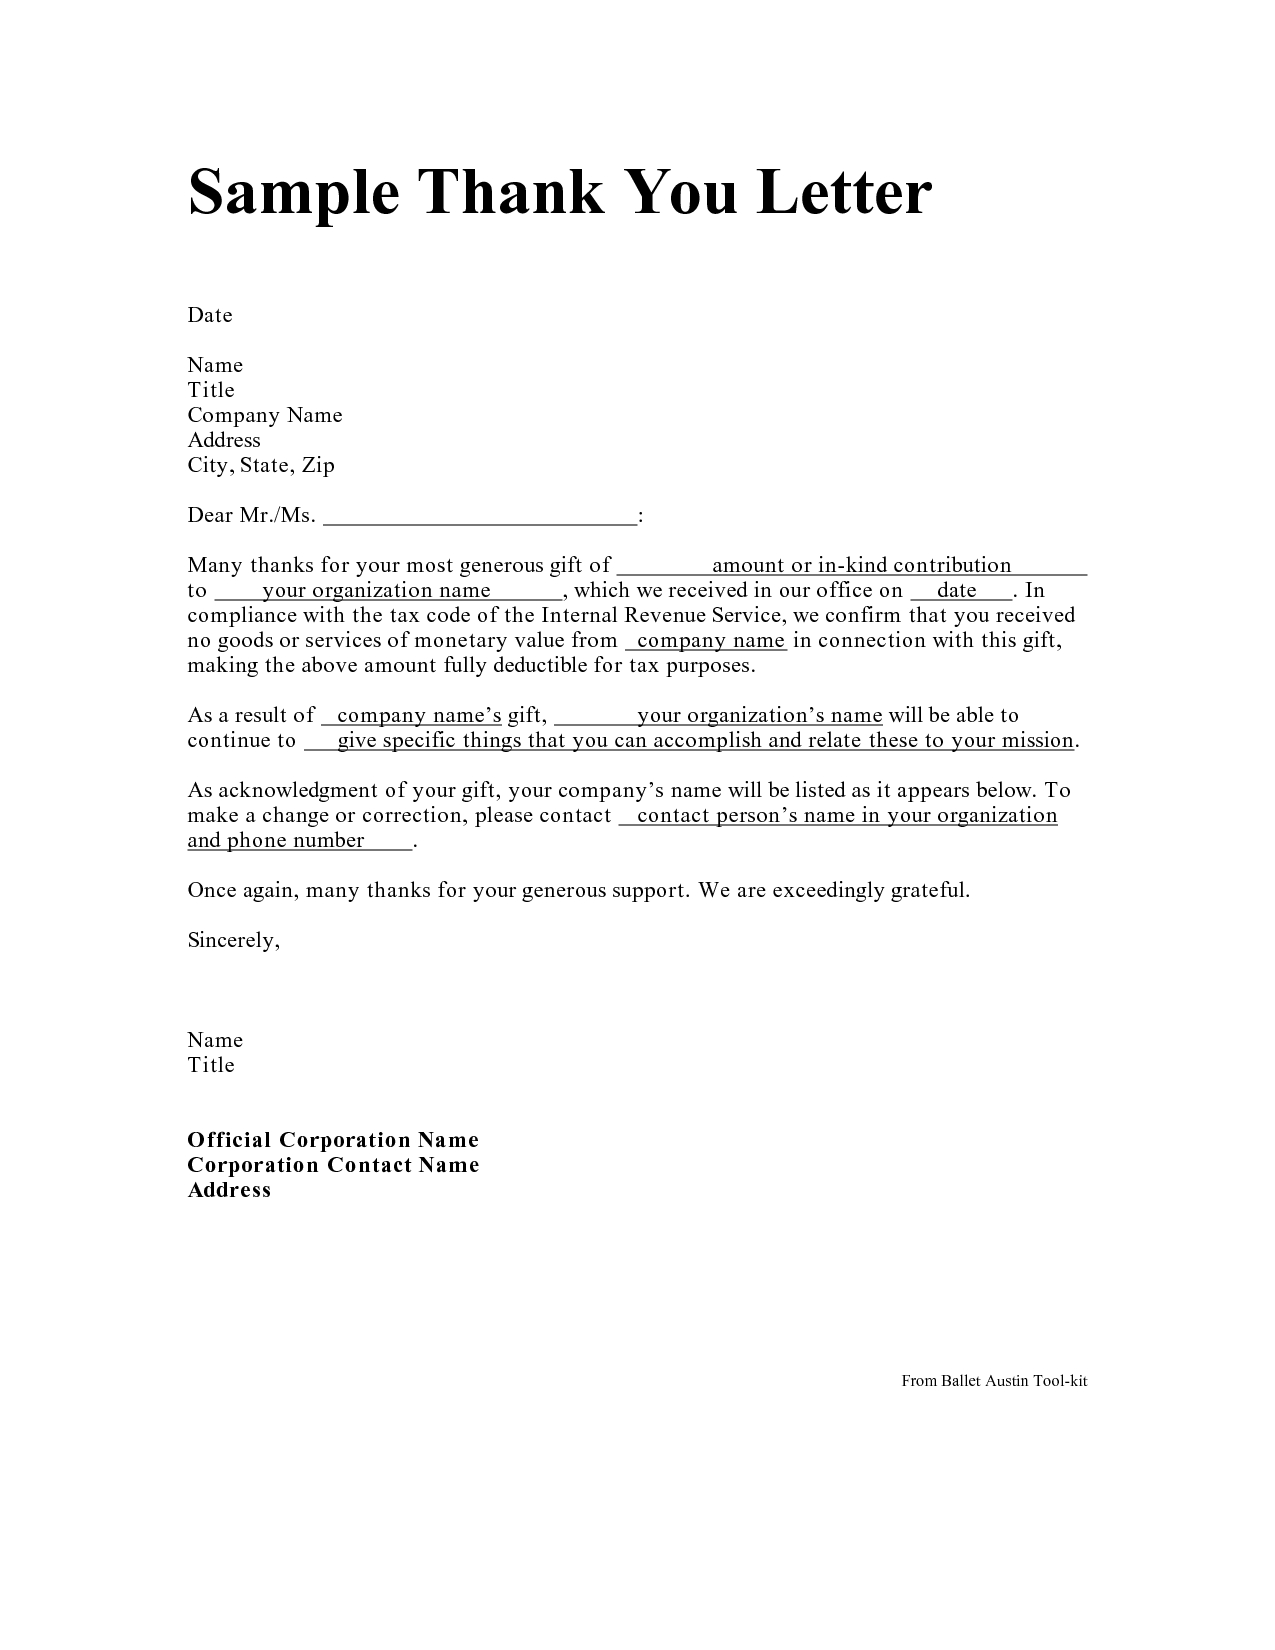 non profit thank you letter template Collection-Personal Thank You Letter Personal Thank You Letter Samples Writing Thank You Notes Thank You Note Examples 13-n